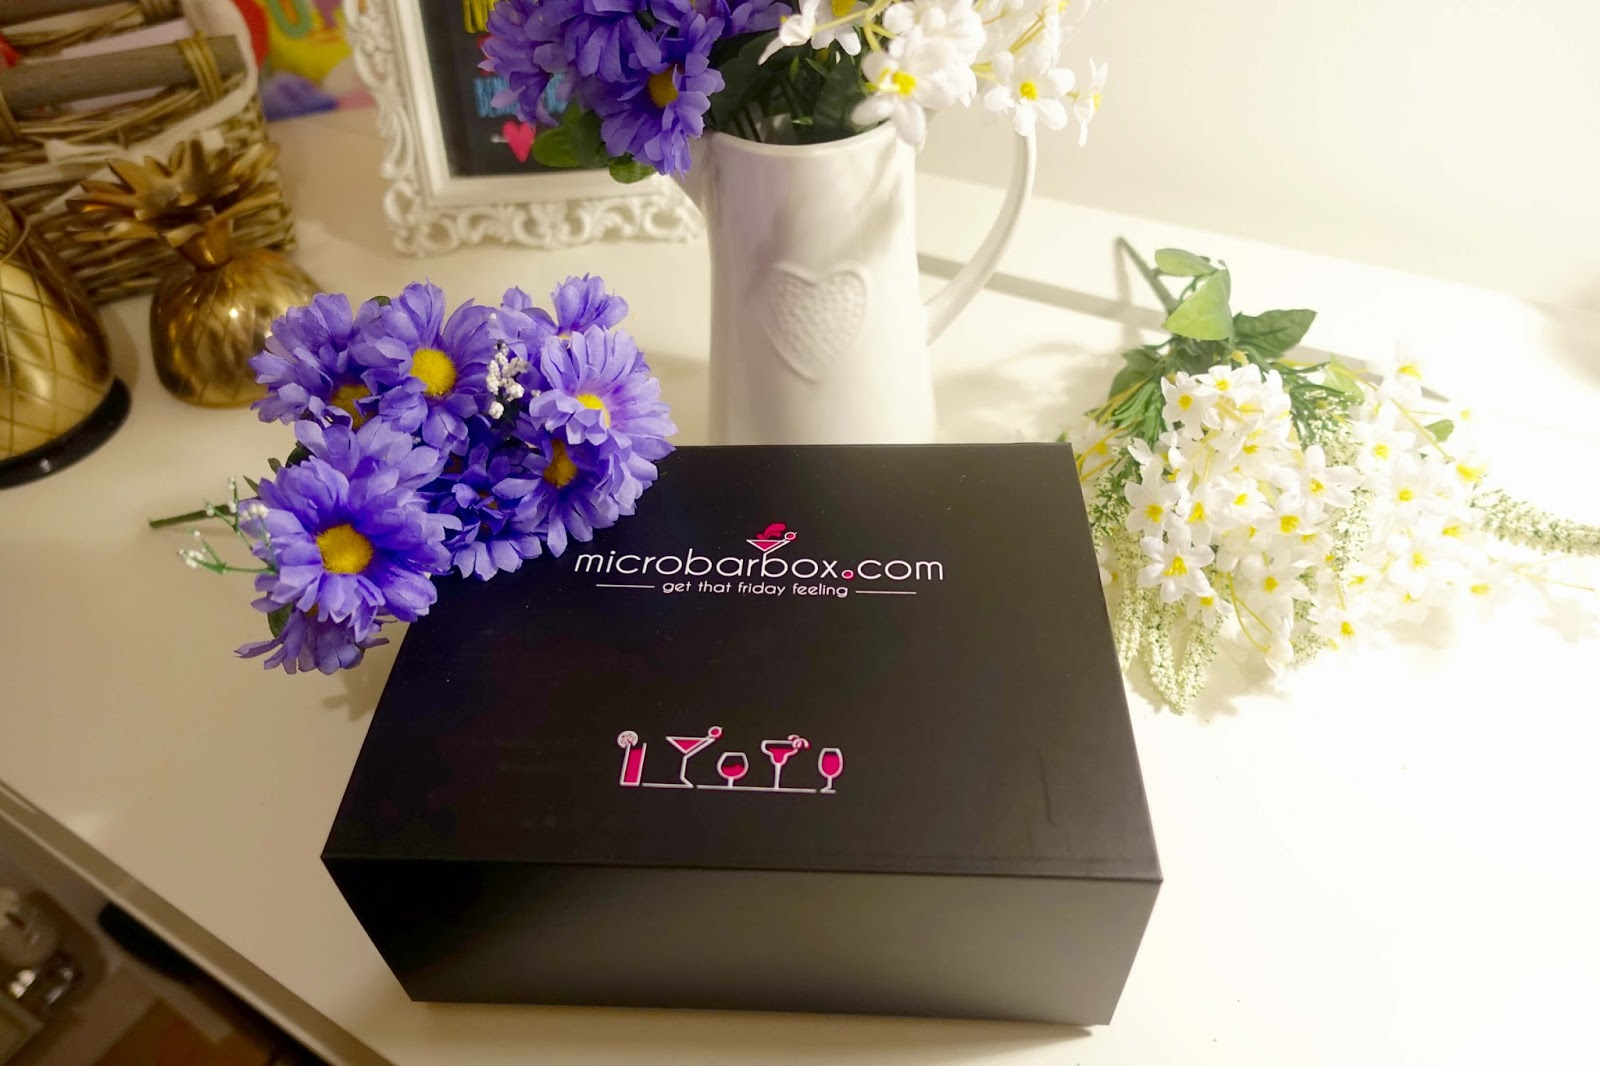 Microbarbox subscription box january detox